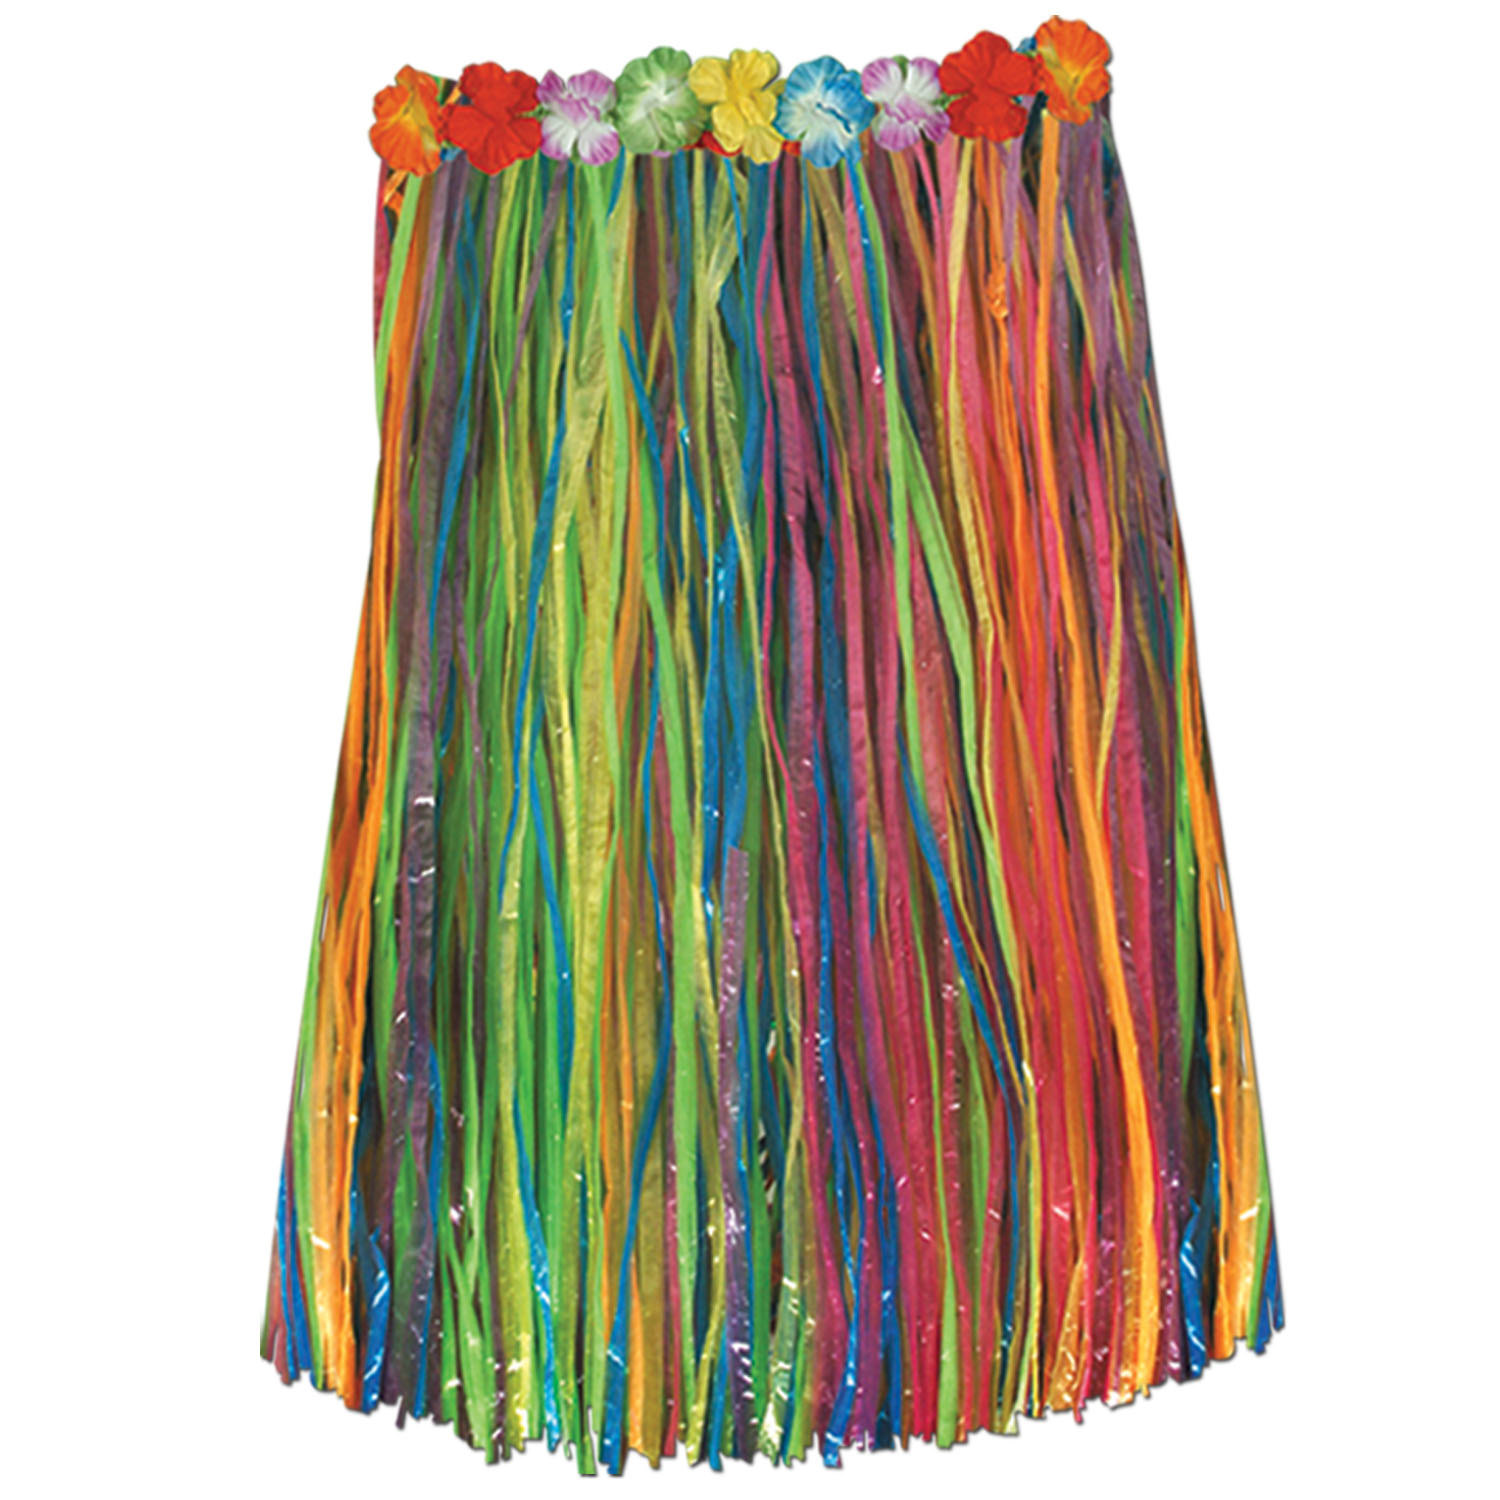 Adult Artificial Grass Hula Skirt (Pack of 12) artificial, adult, grass, hula, skirt, hawaiian, luau, costume